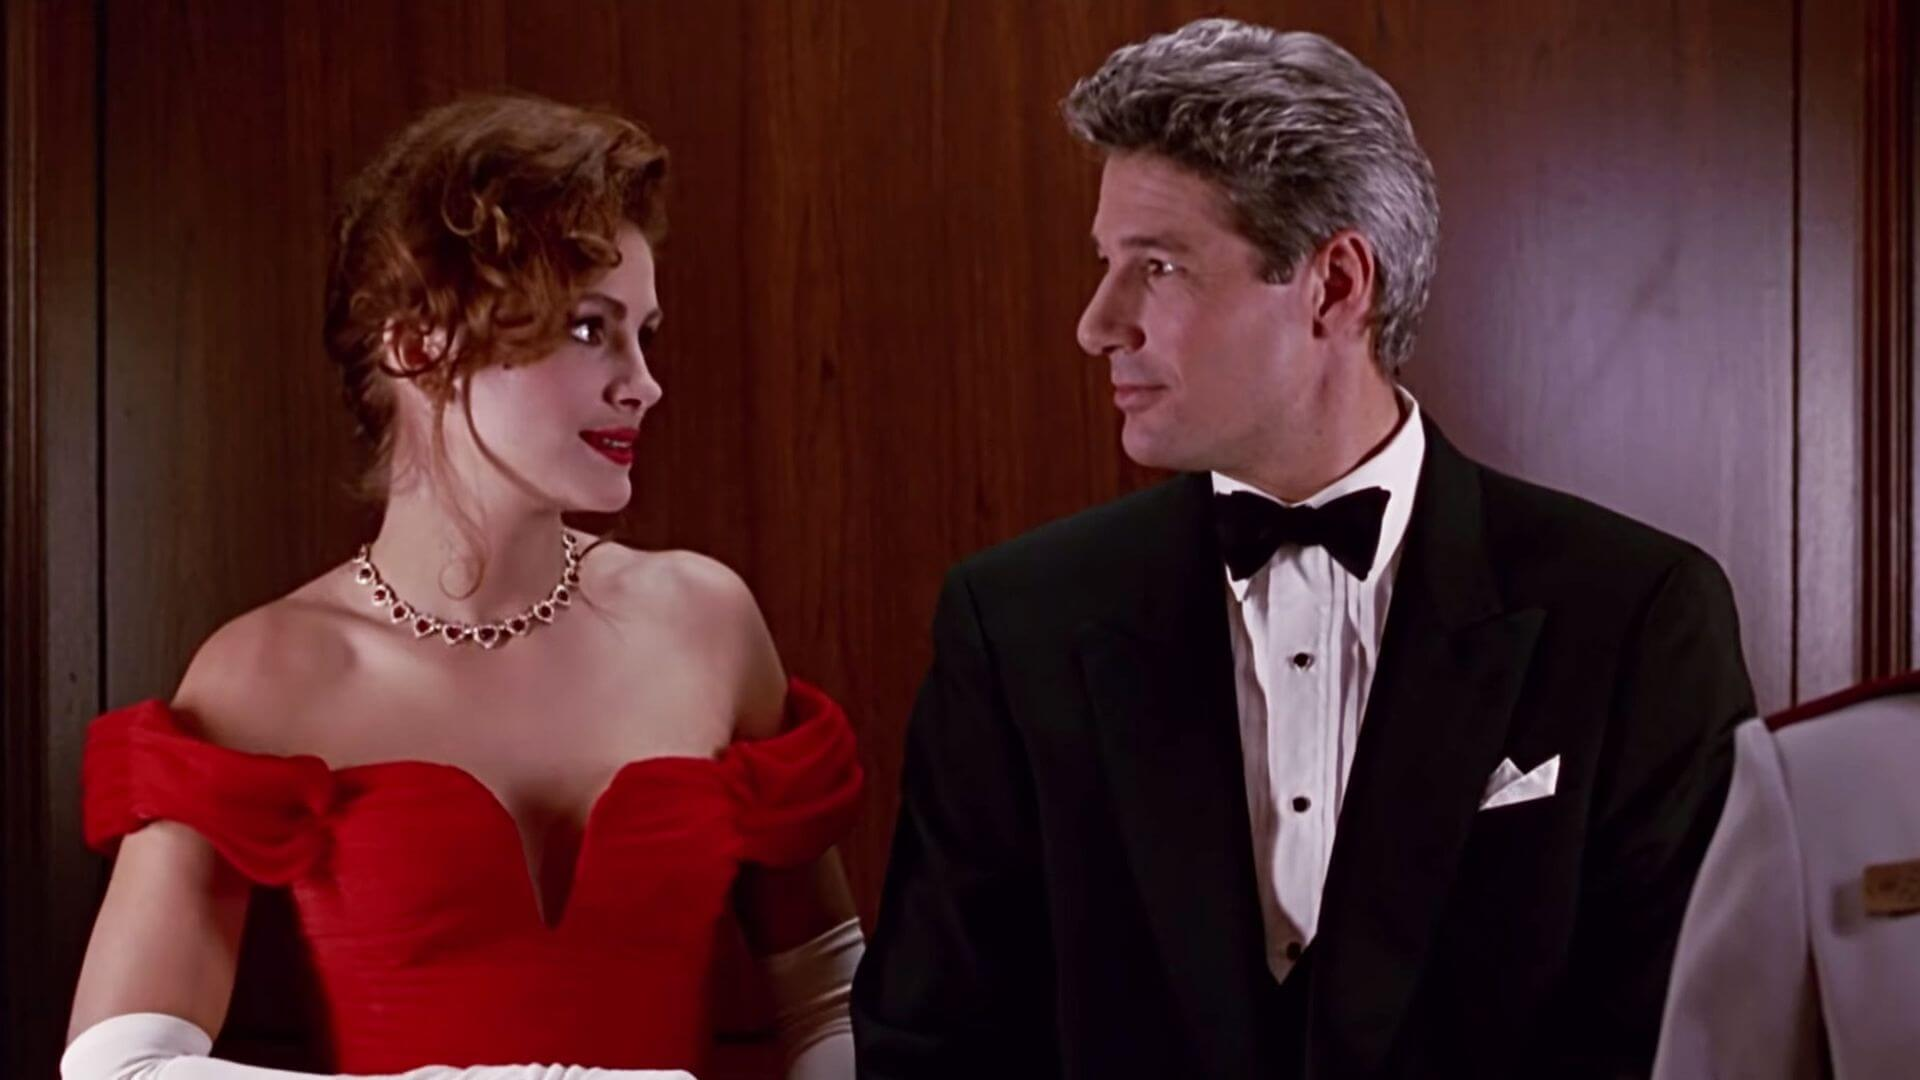 Image showing Julia Roberts wearing famous hollywood jewelry in a movie